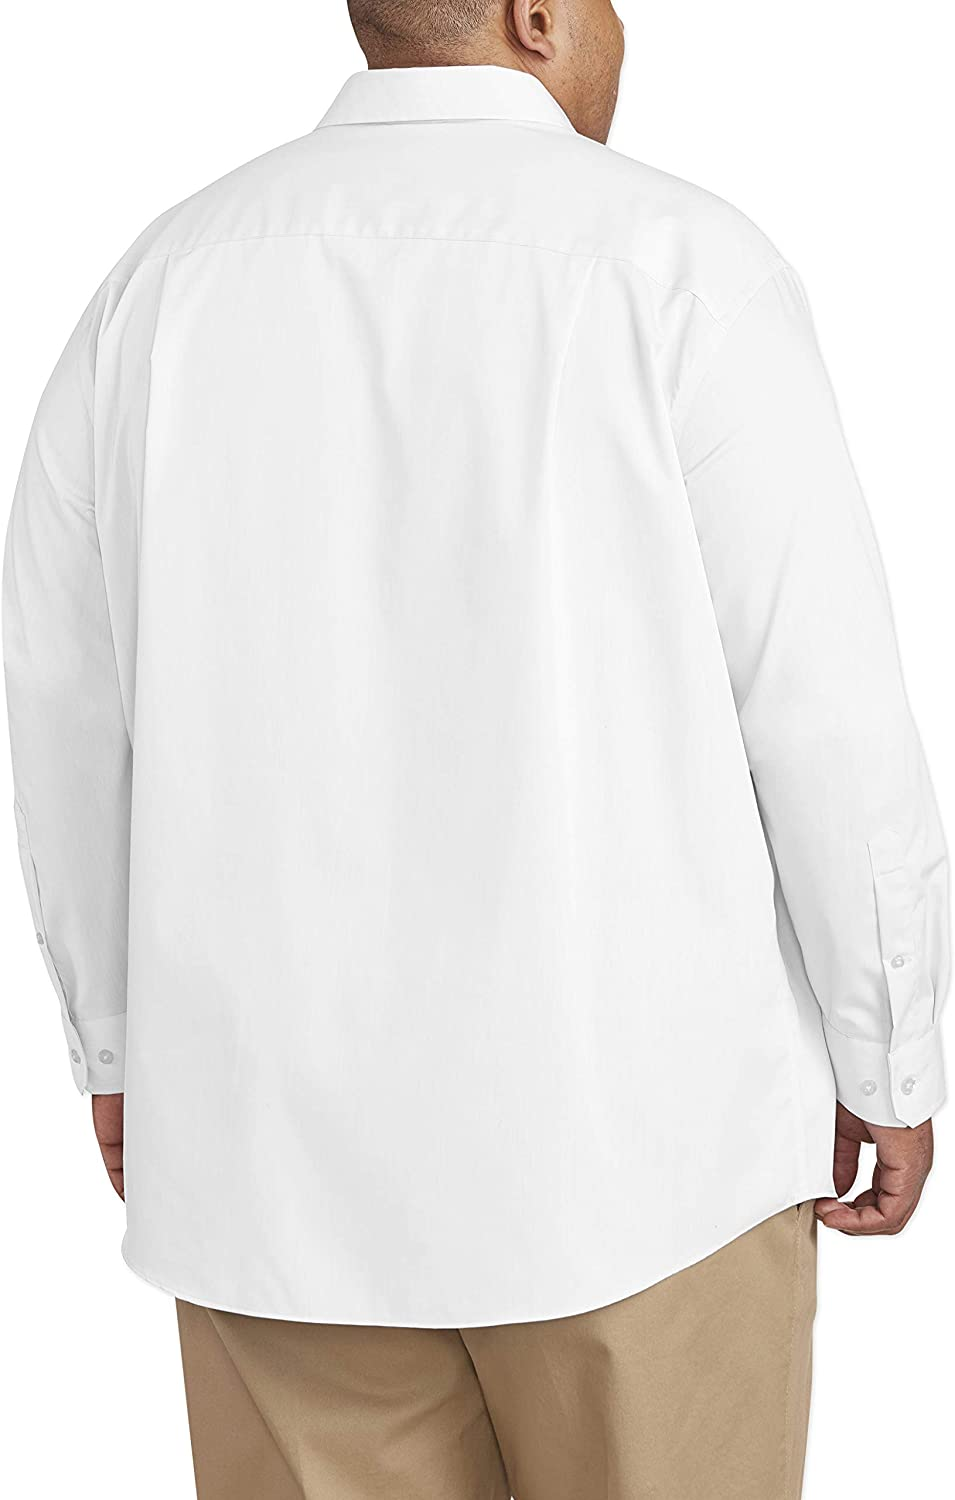 Amazon Essentials Men's Big & Tall Wrinkle-Resistant Long-Sleeve Solid Dress Shirt fit by DXL